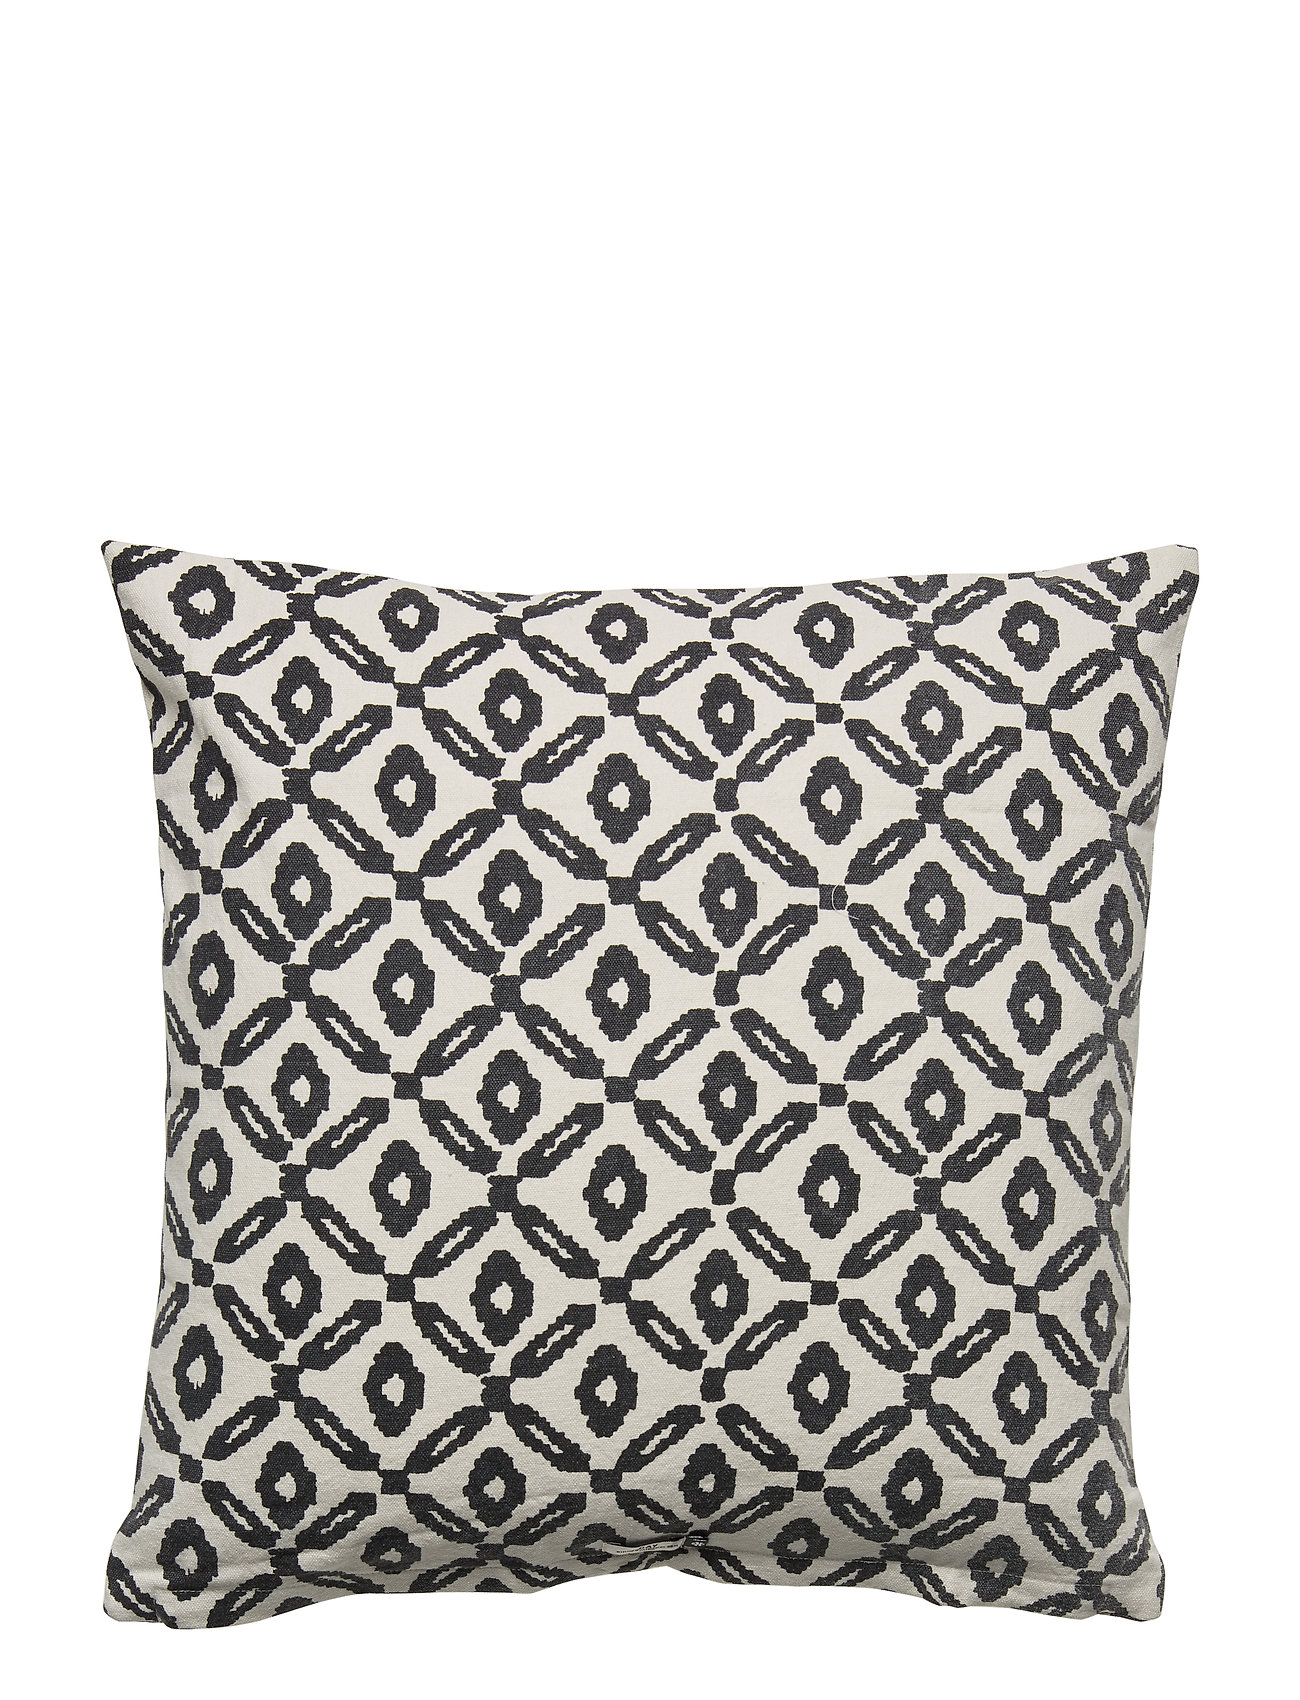 DAY Home Day Printed Canvas Cushion Cover - BLACK/WHITE, PRINTED